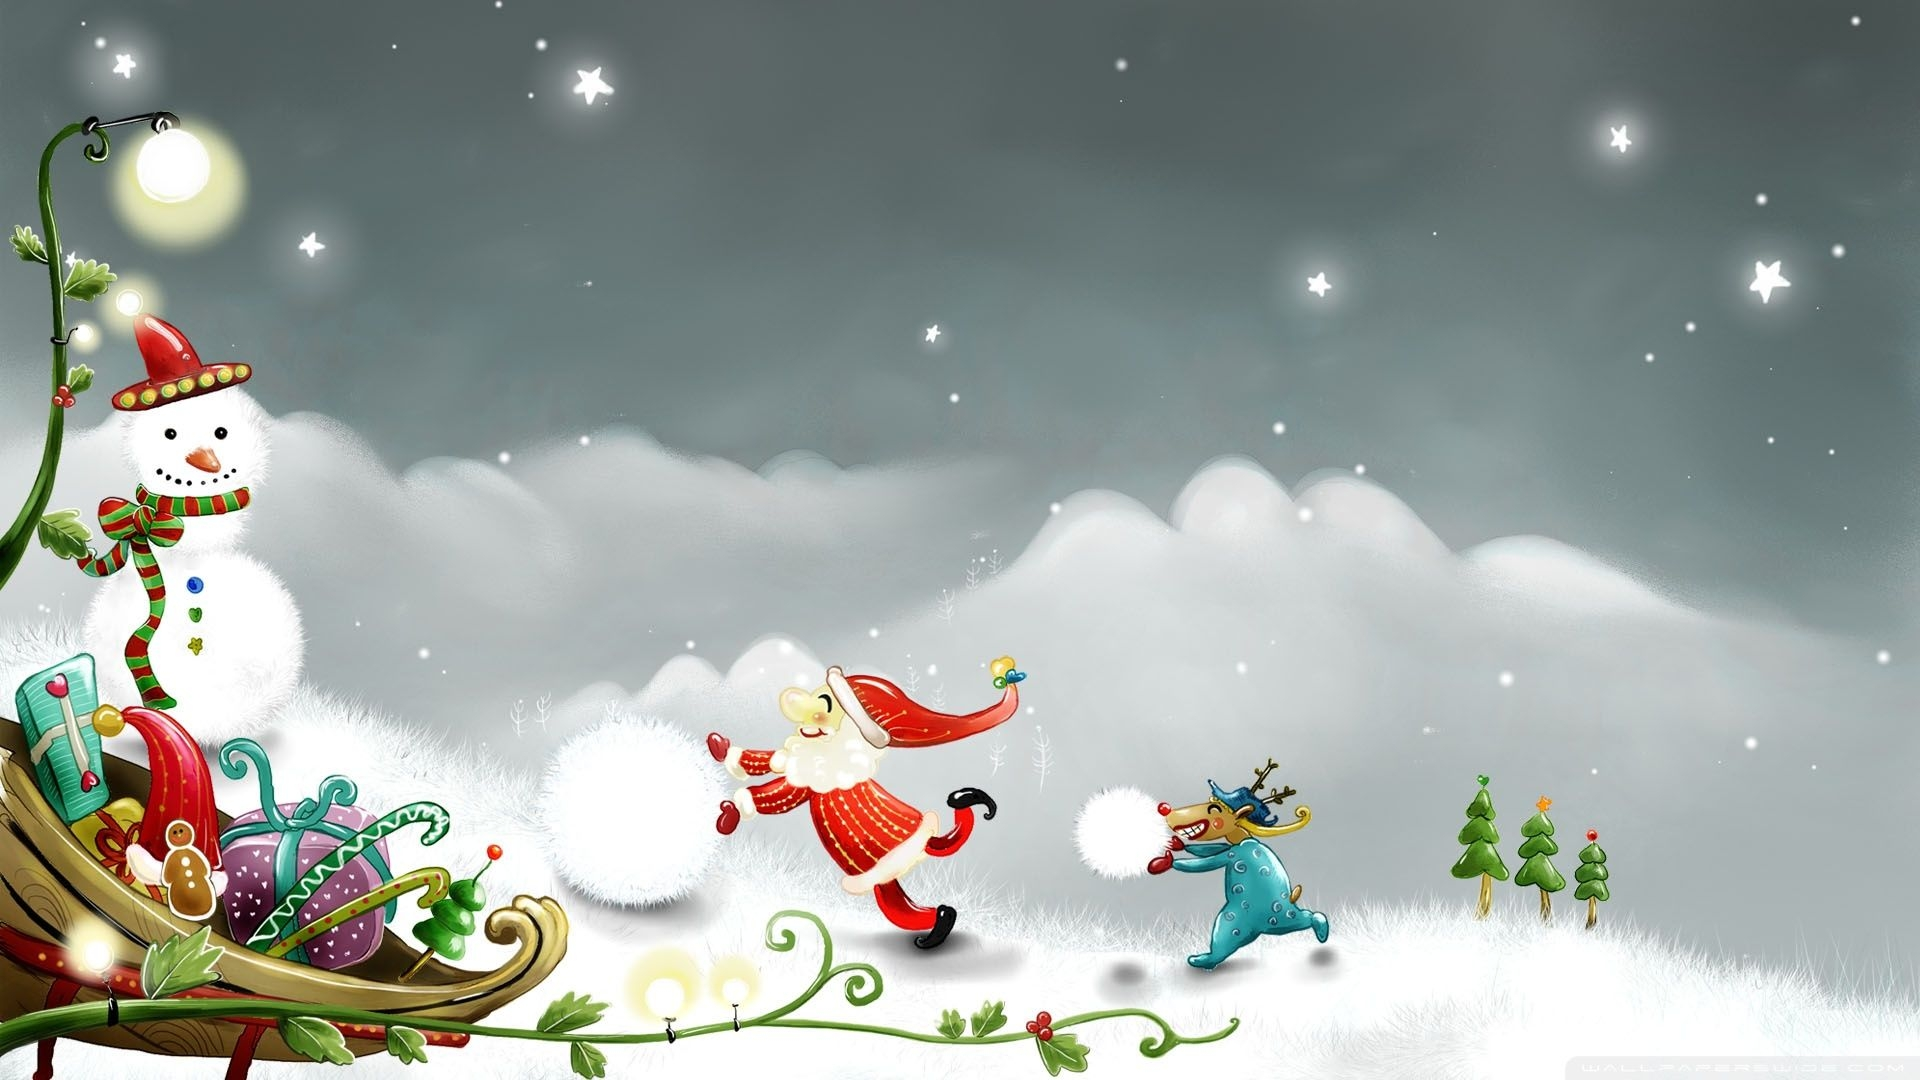 Free Christmas Wallpaper Backgrounds.58 Free Christmas Wallpaper Backgrounds On Wallpapersafari